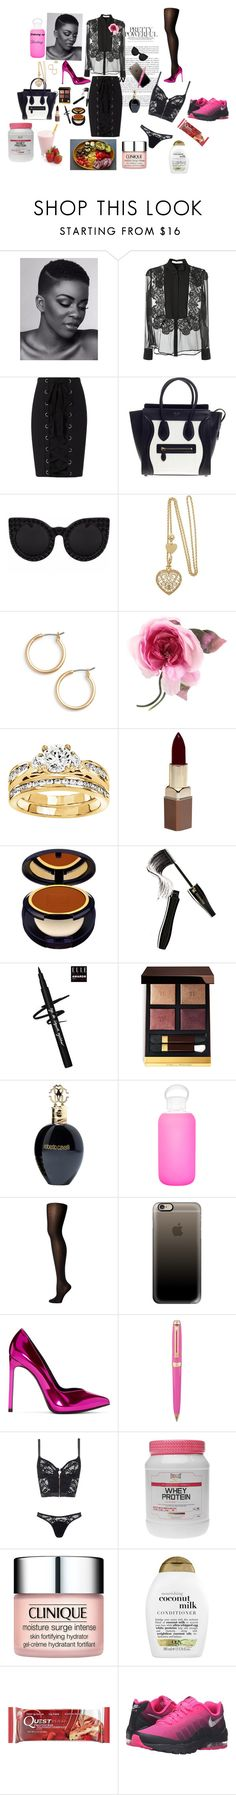 """""""The new power suit"""" by sungoddess589 ❤ liked on Polyvore featuring Givenchy, Exclusive for Intermix, CÉLINE, Nordstrom, Gucci, Modern Bride, Fashion Fair, Estée Lauder, Lancôme and Tom Ford"""